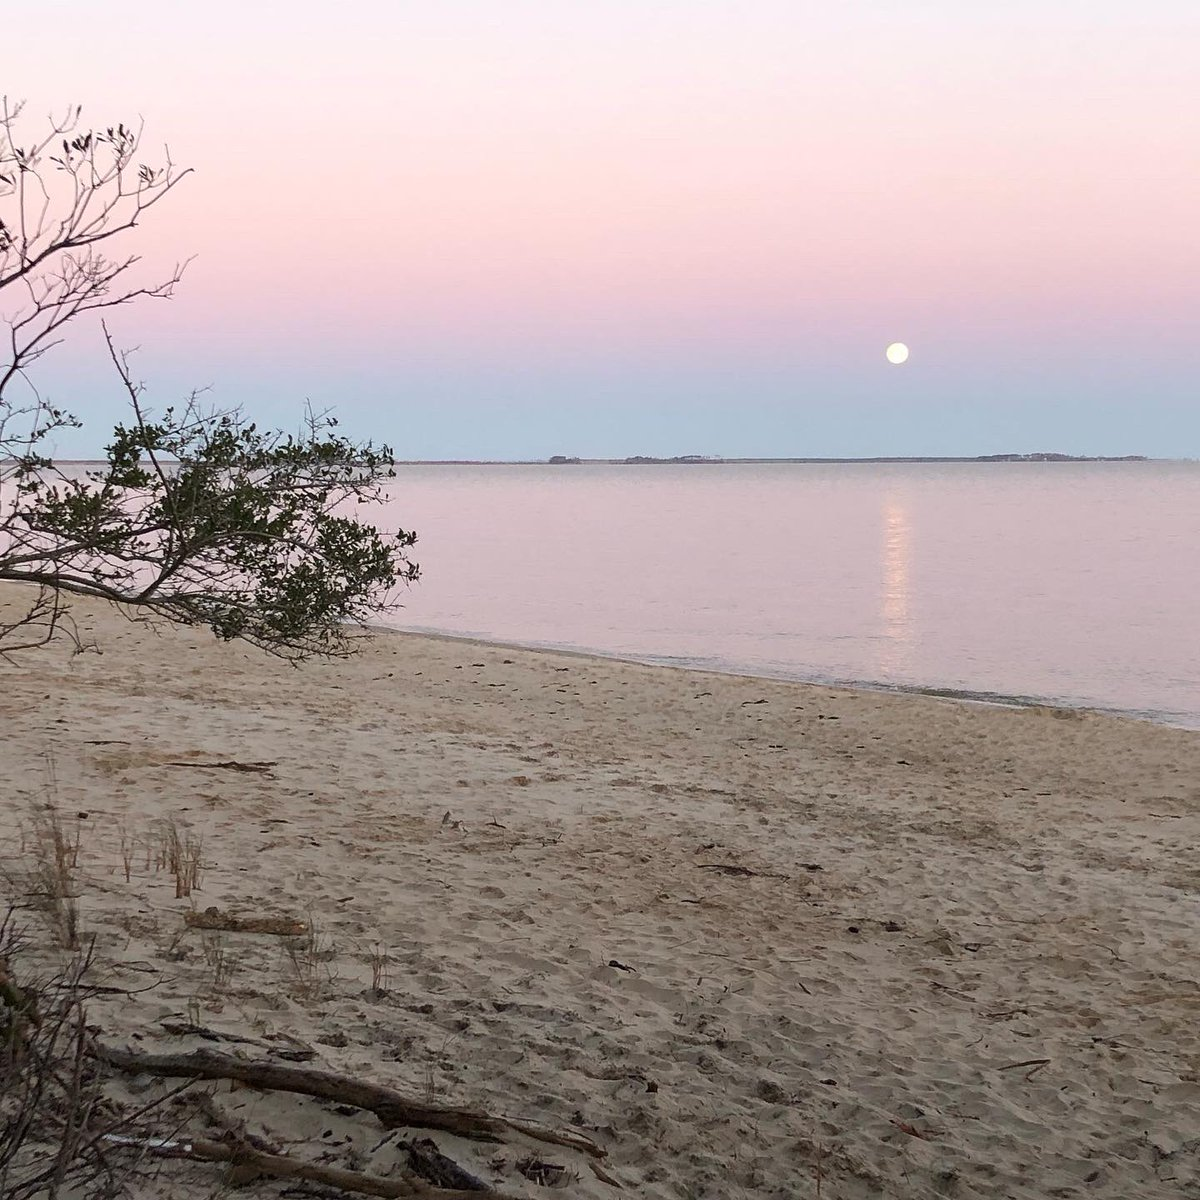 Nice moon view this morning from the Etheridge Point beach at the end of Pear Pad Road.